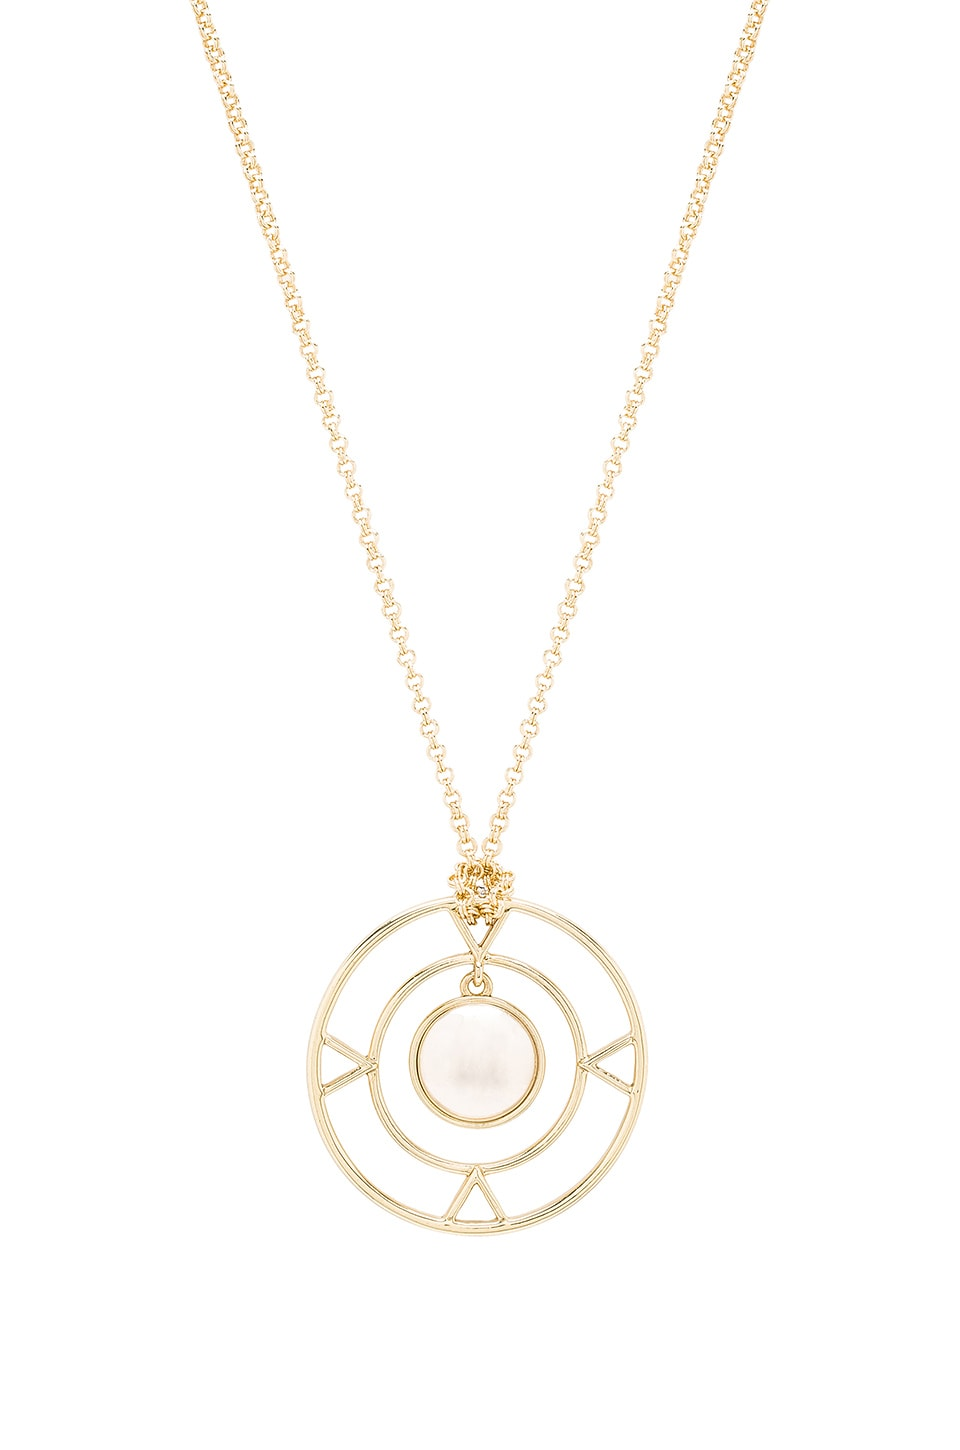 House of harlow 1960 house of harlow the four elements pendant house of harlow 1960 house of harlow the four elements pendant necklace in gold mozeypictures Image collections